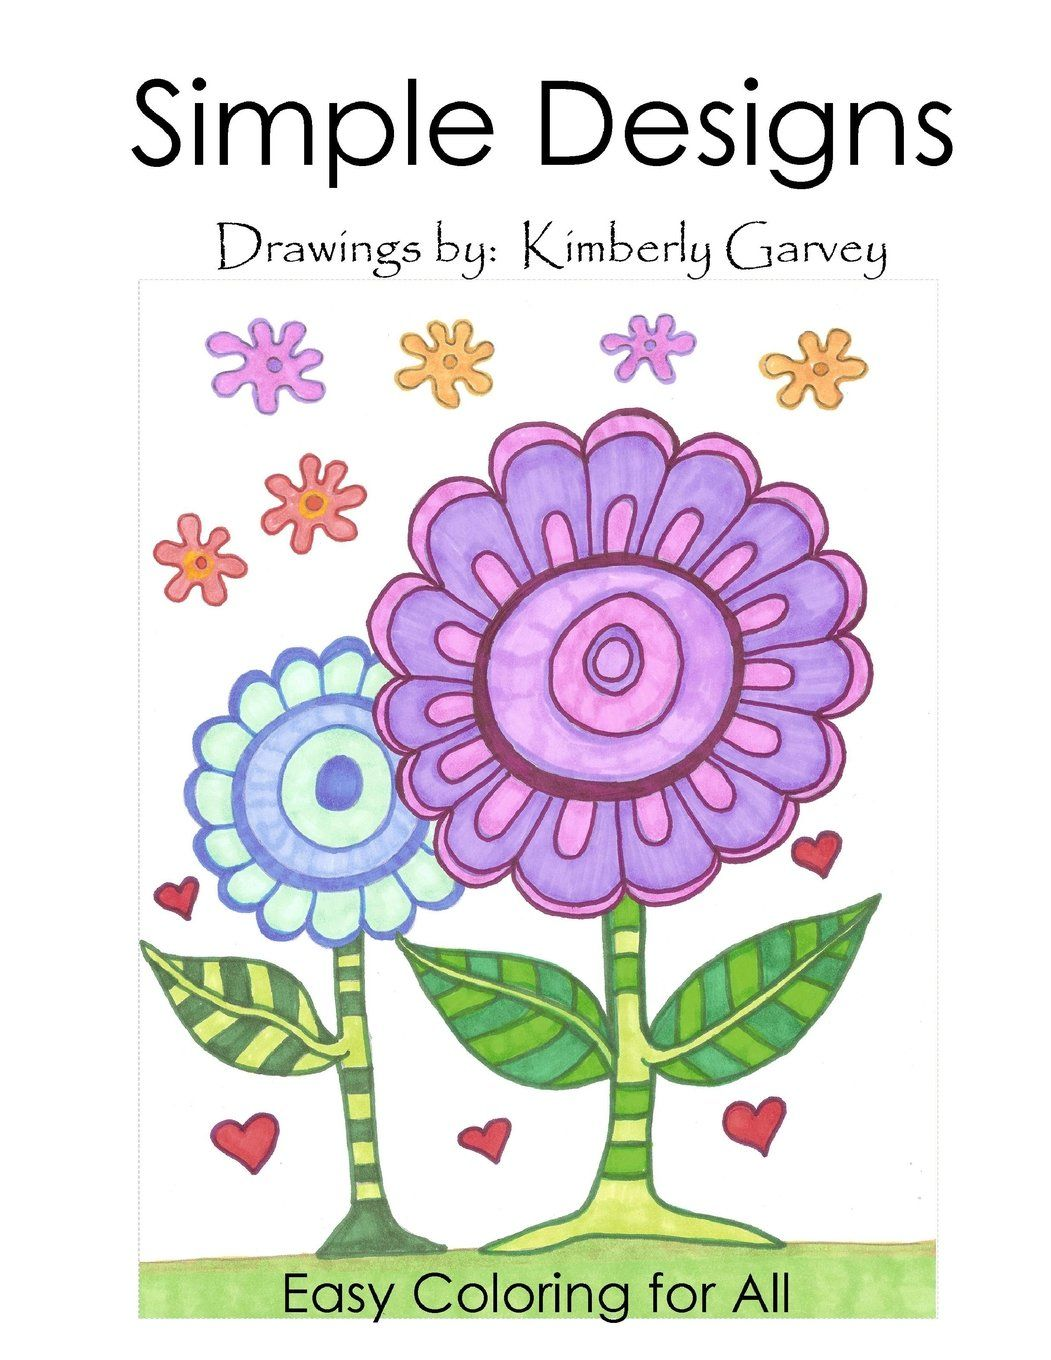 Large Print Coloring Books For Seniors Coloring Books For Adults